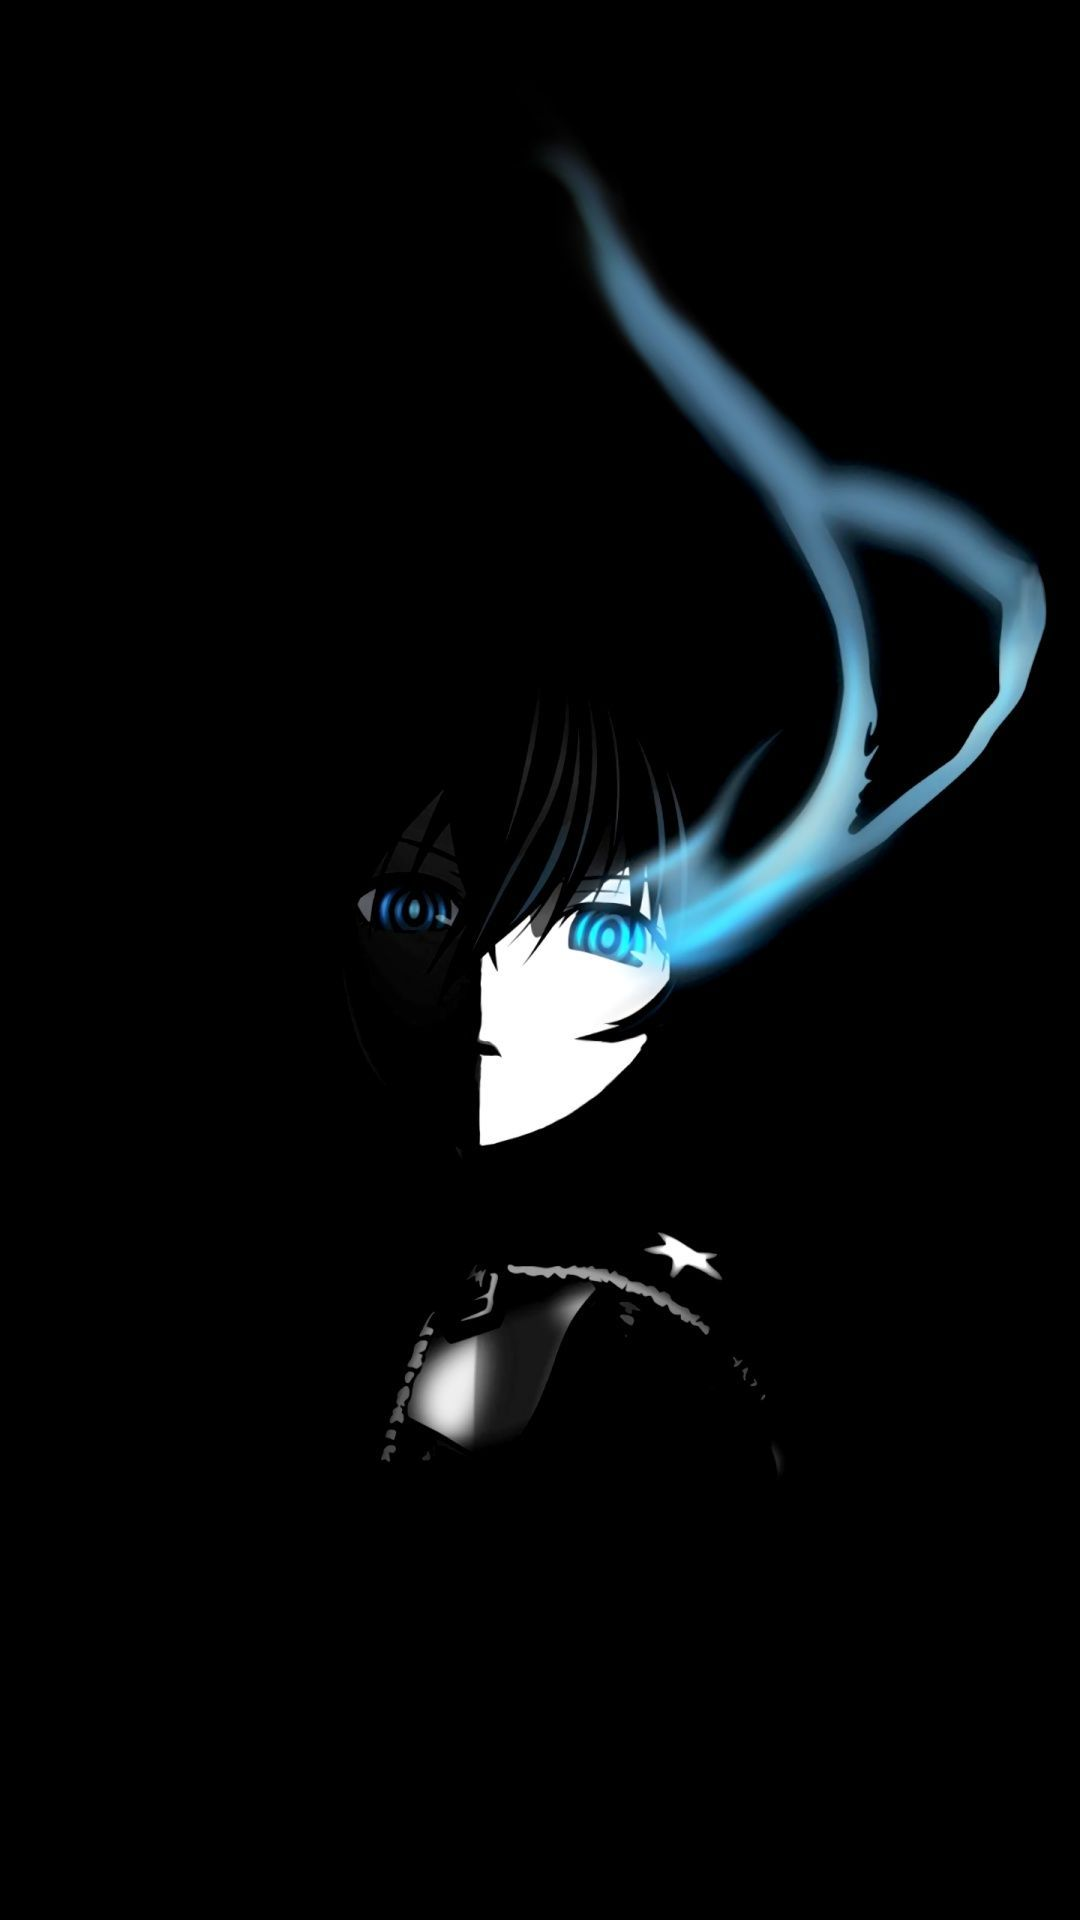 3d Animation Background Image In 2020 Anime Wallpaper Black Rock Shooter Animation Background